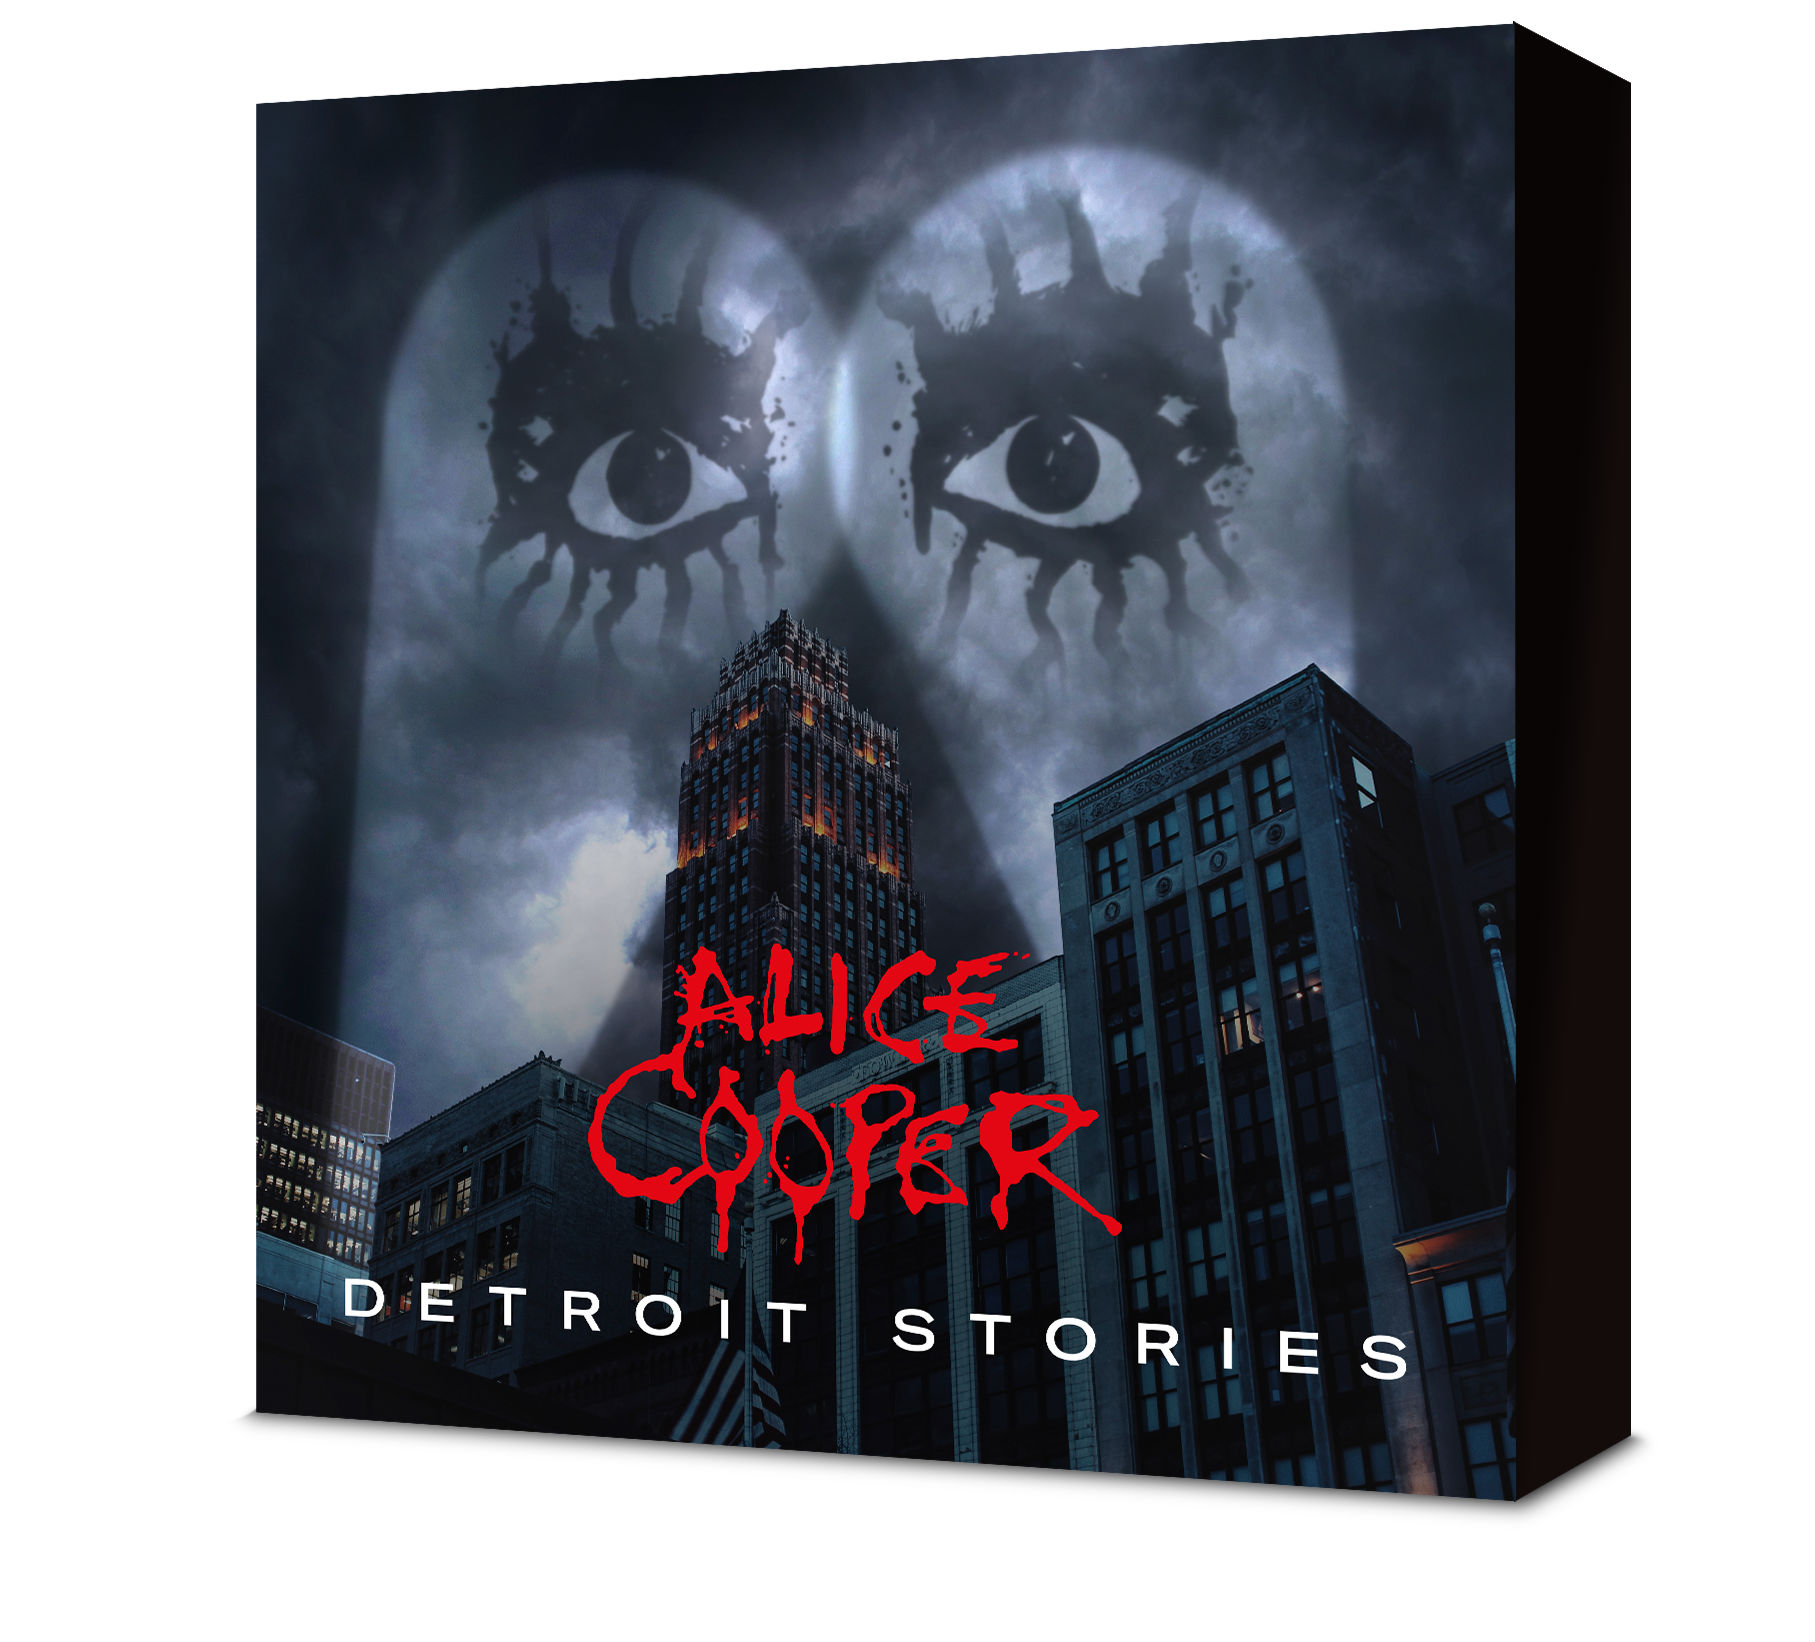 Alice Cooper broadcasts new album 'Detroit Tales' and teases first observe